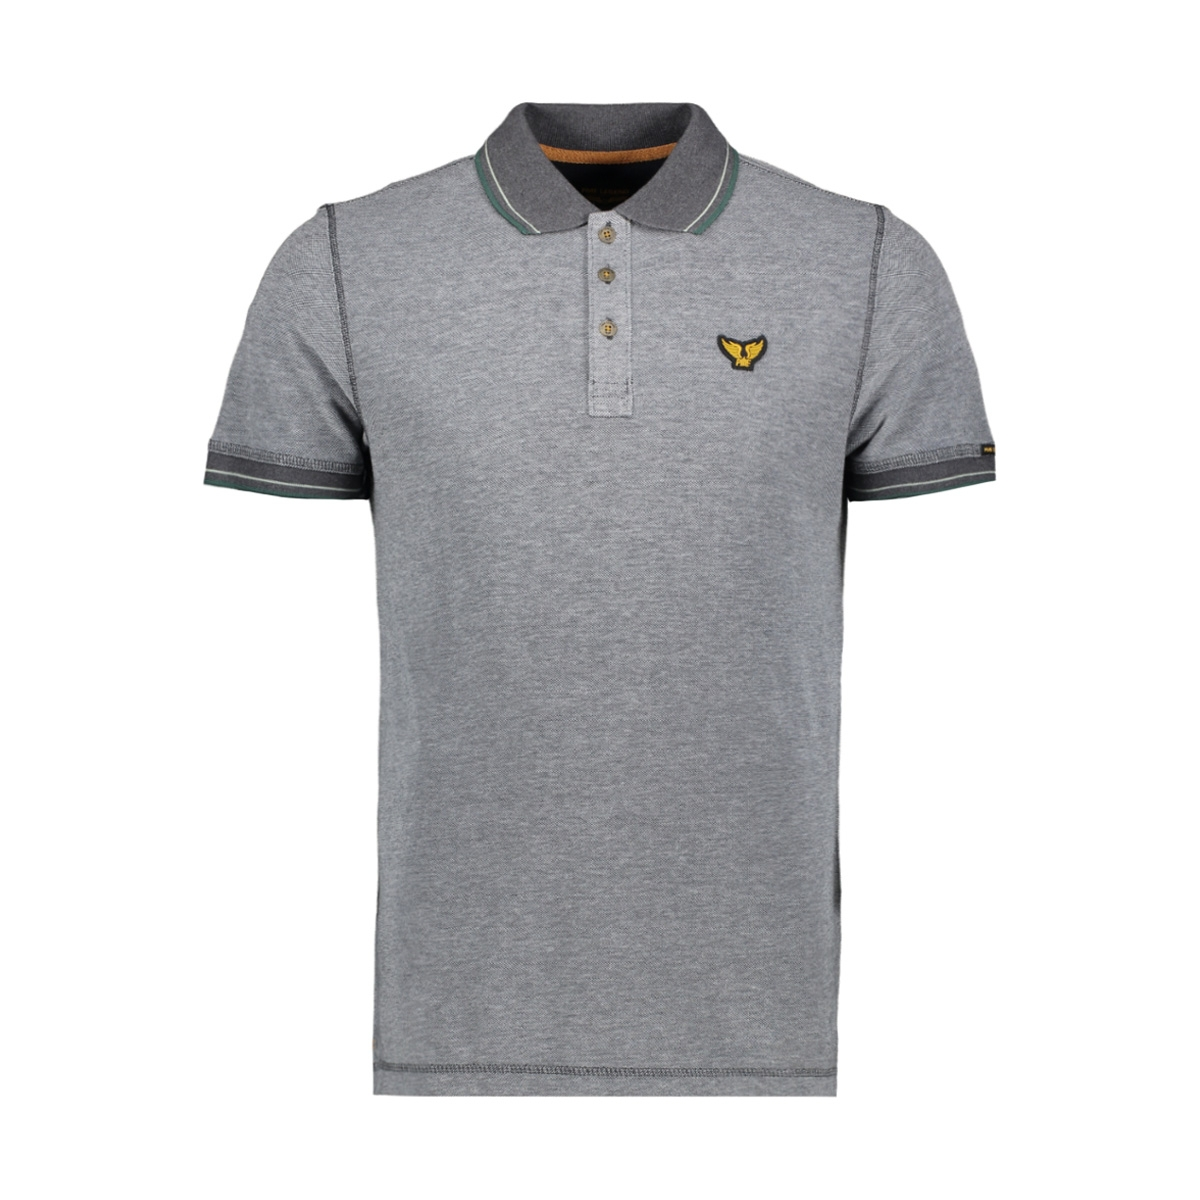 polo two tone pique ppss192869 pme legend polo 5281